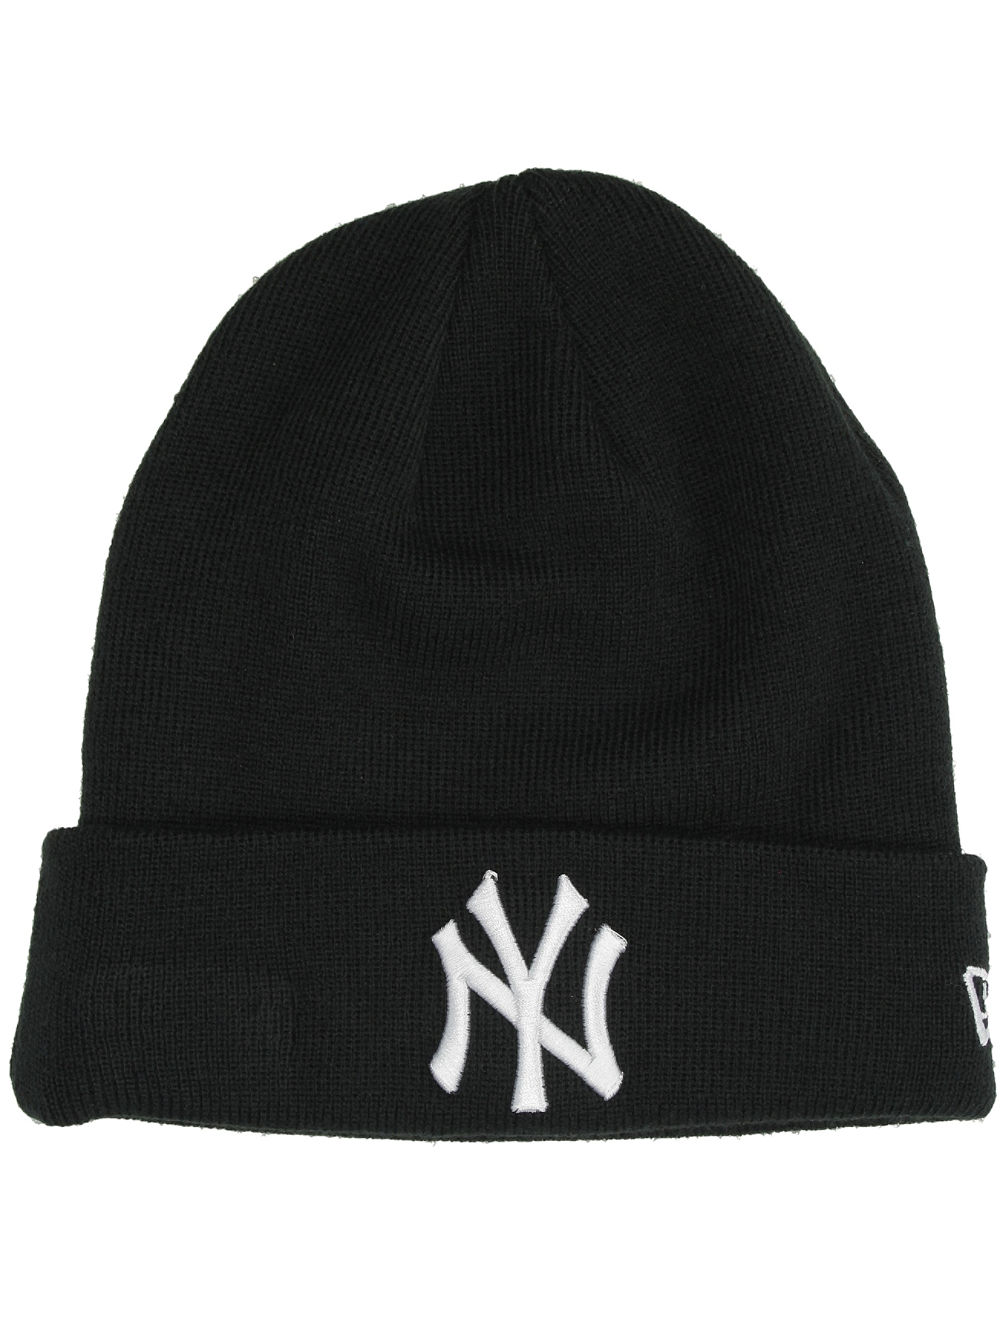 League Essential Cuff Beanie